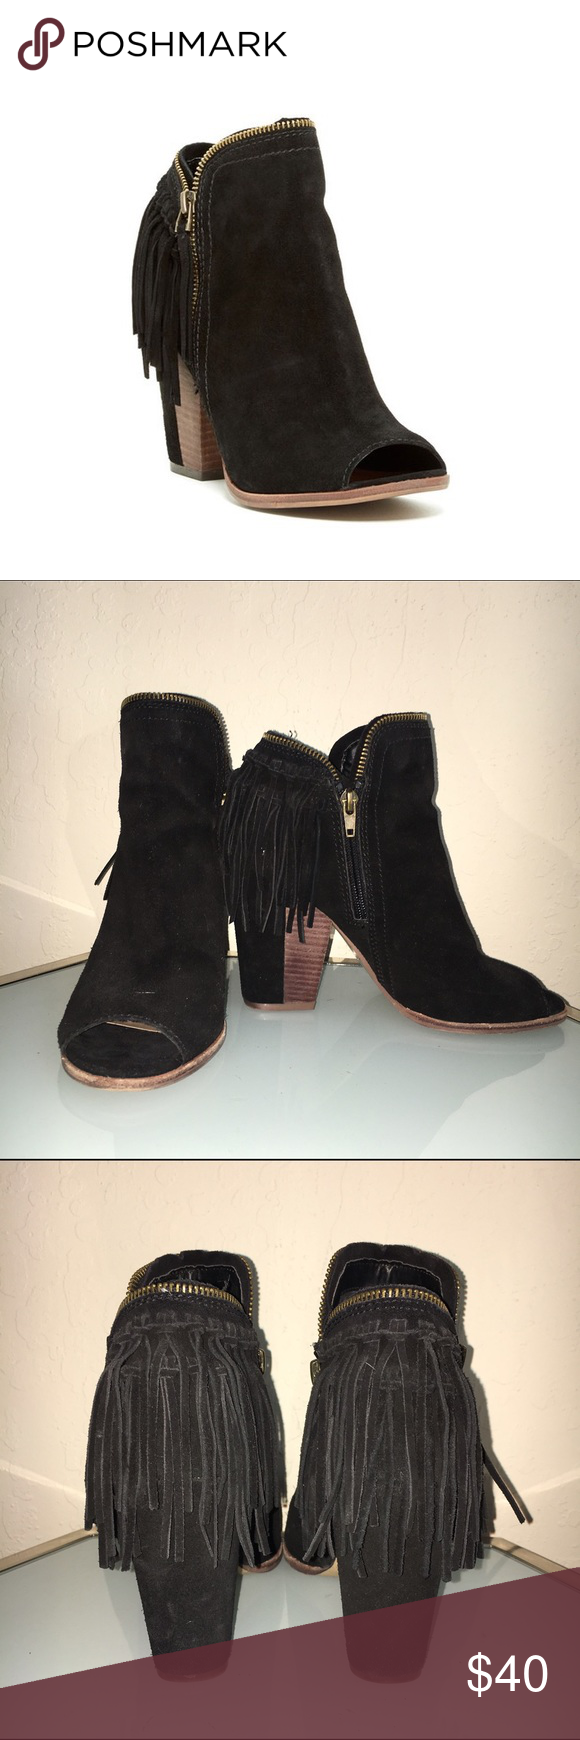 "Dolce Vita ""Premiere"" open toe bootie - Size 7.5 Slightly worn (2-3 times) but in great condition.  Sizing: True to size. Details:  - Open toe - Zipper detail - Topstitching - Fringed back - Side zip closure - Lightly padded footbed - Partially covered chunky stacked heel - Approx. 4.5"" shaft height, 9"" opening circumference - Approx. 4"" heel  Materials: Suede upper, manmade sole Dolce Vita Shoes Ankle Boots & Booties"